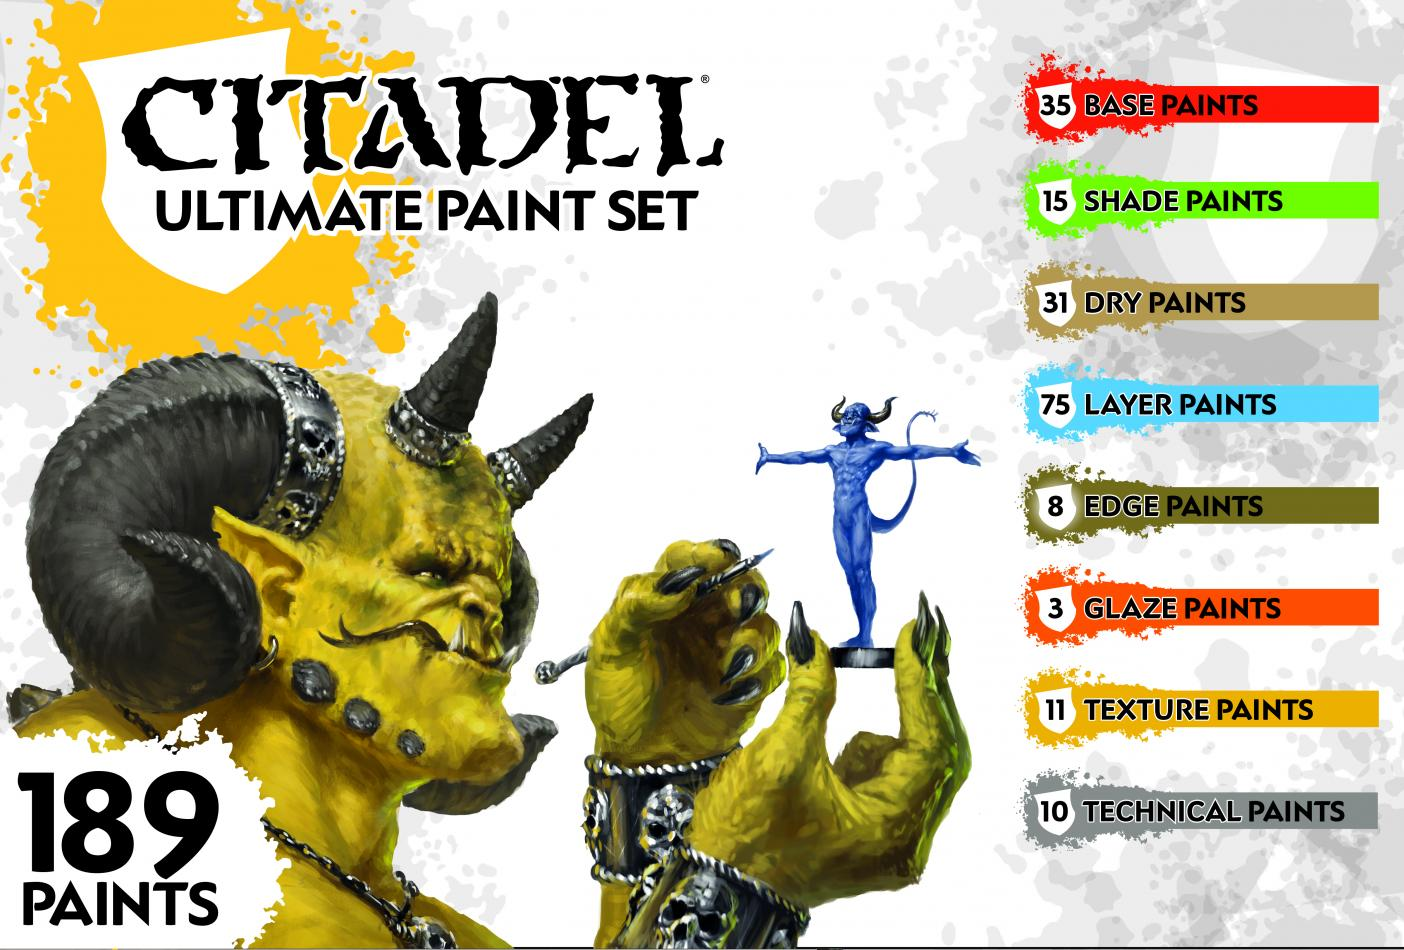 Citadel Ultimate Paint Set